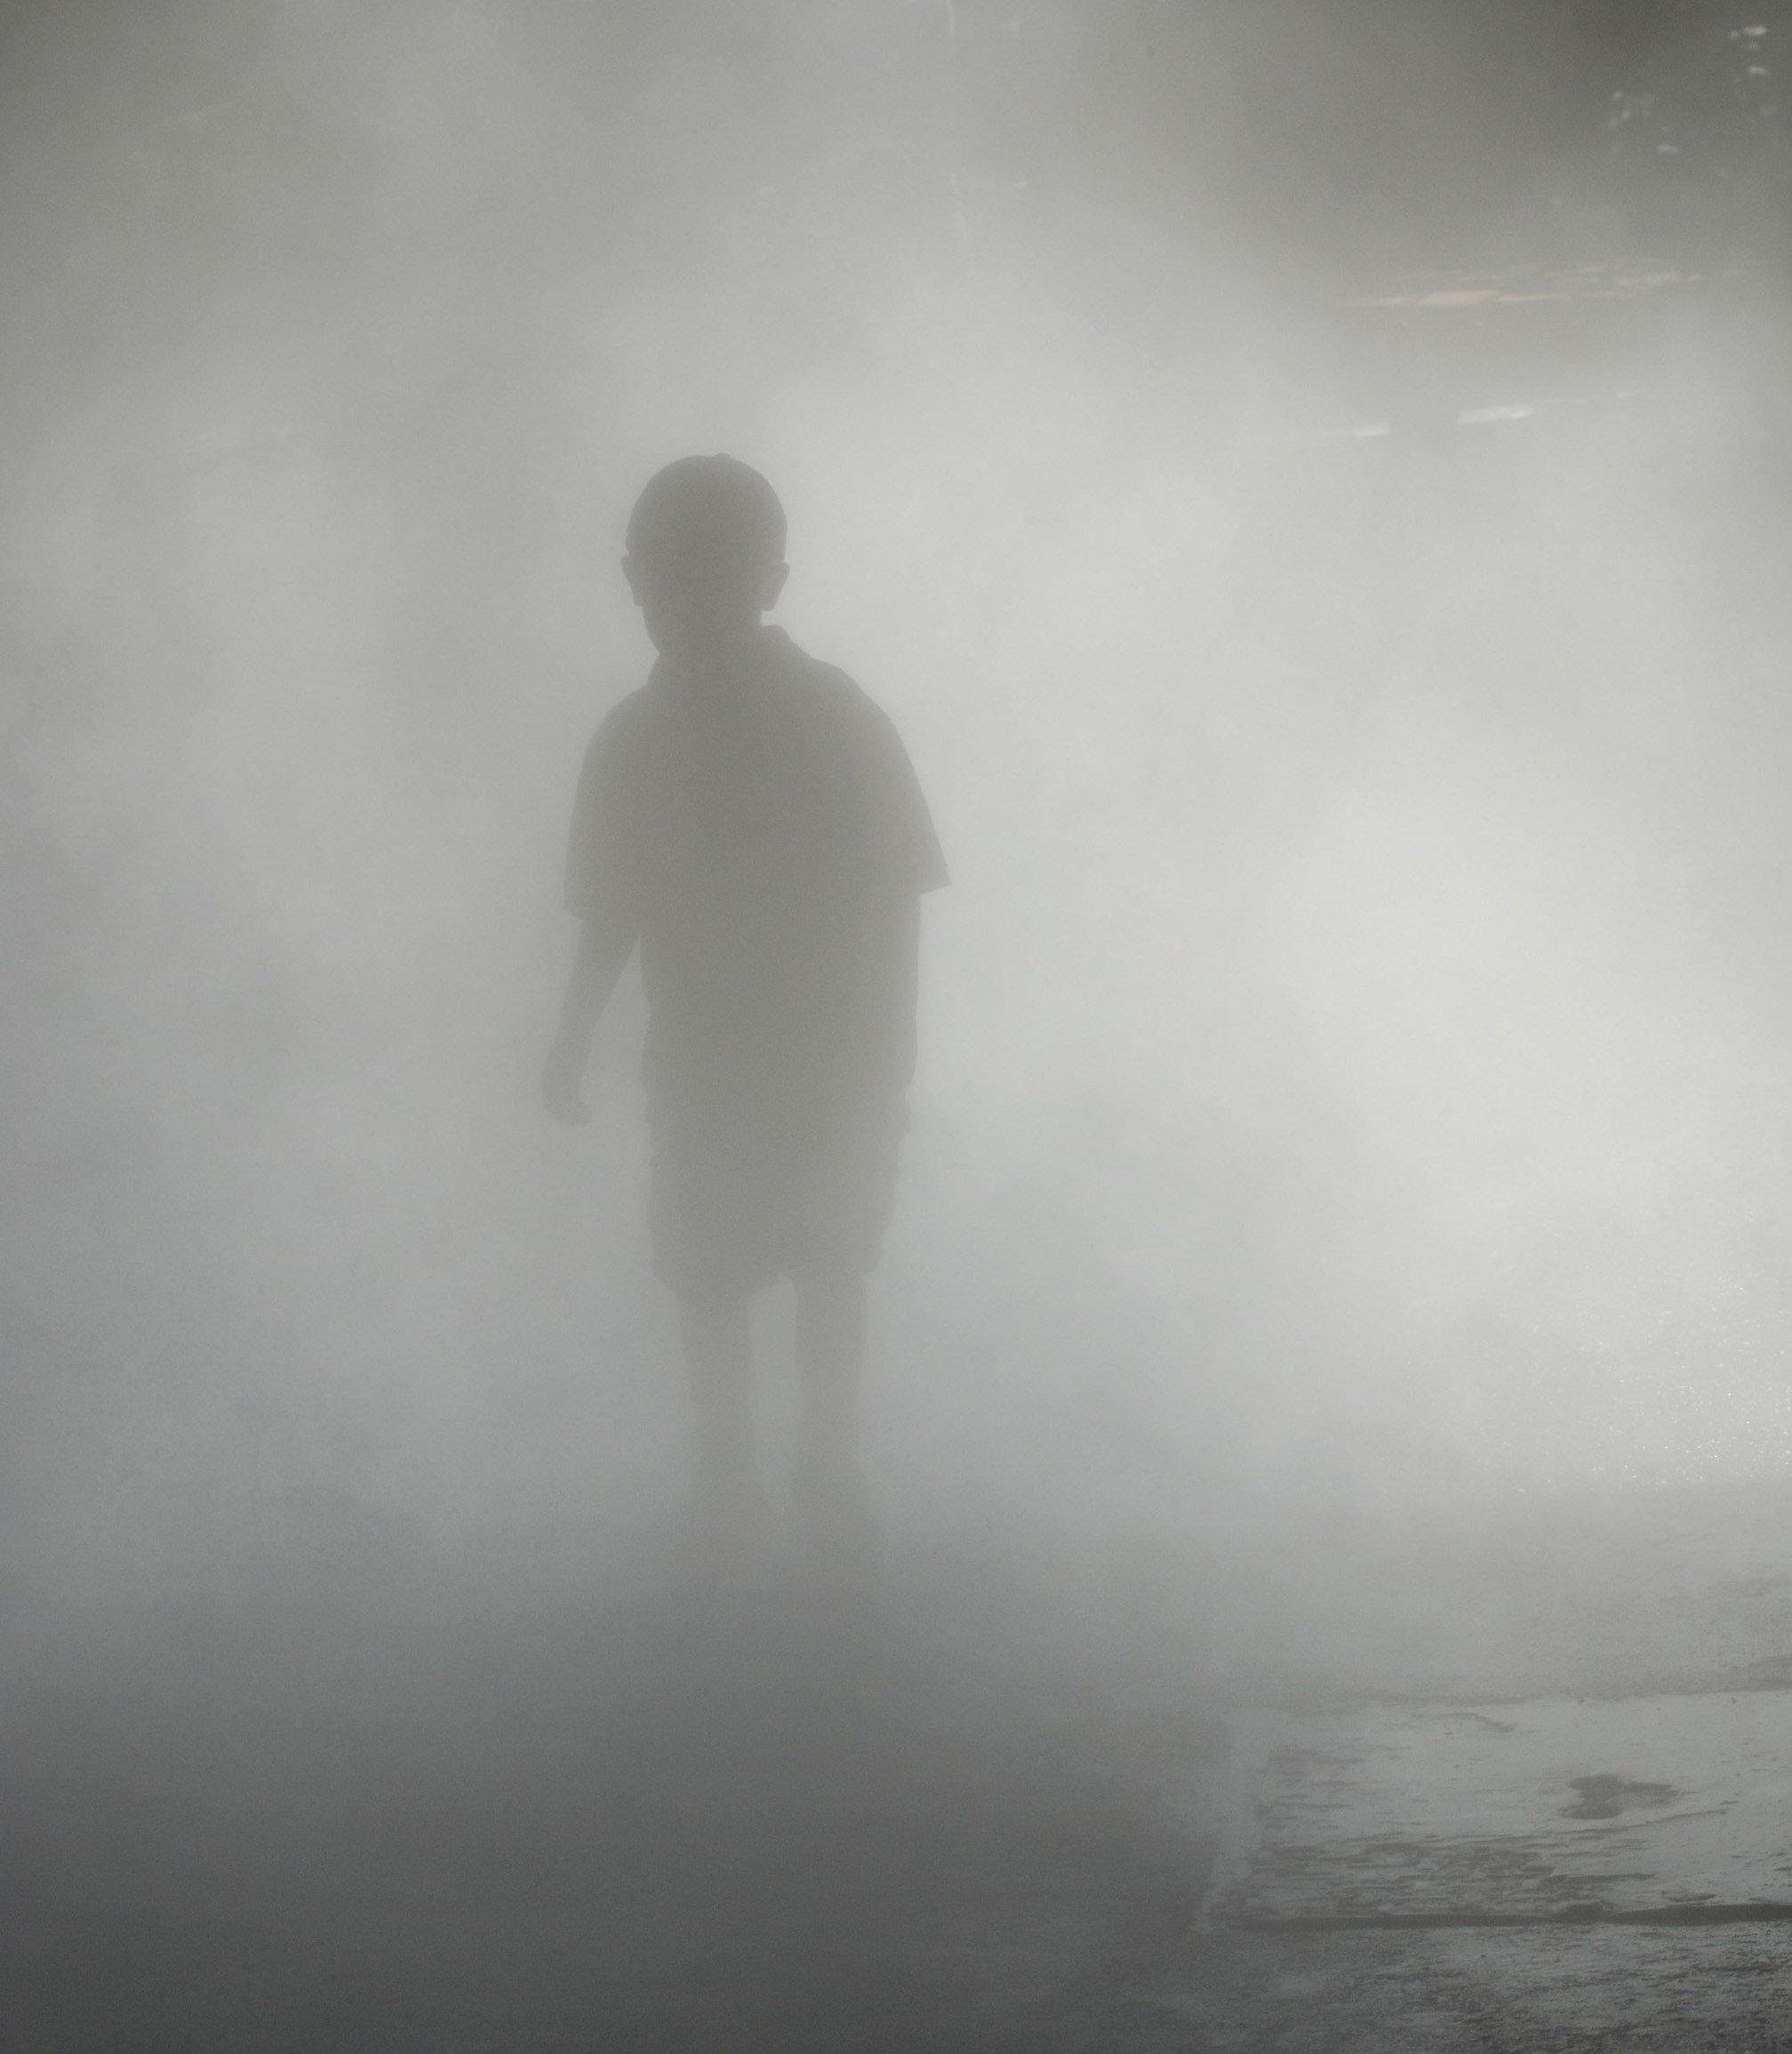 Children singing 'It's Raining, It's Pouring' echoed through the night for months in an English town. (Source: Getty)